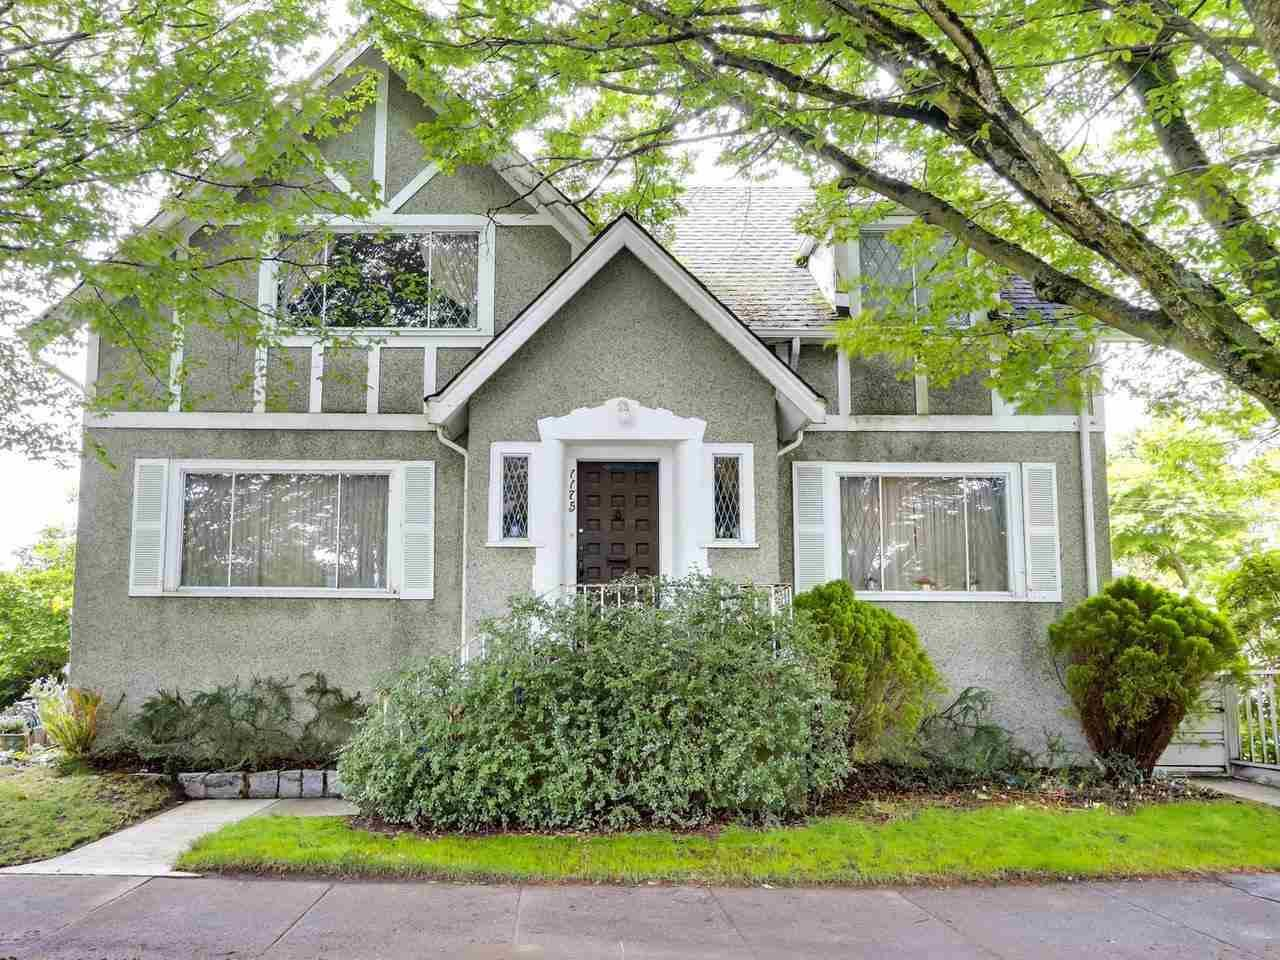 Main Photo: 1175 CYPRESS Street in Vancouver: Kitsilano House for sale (Vancouver West)  : MLS®# R2592260